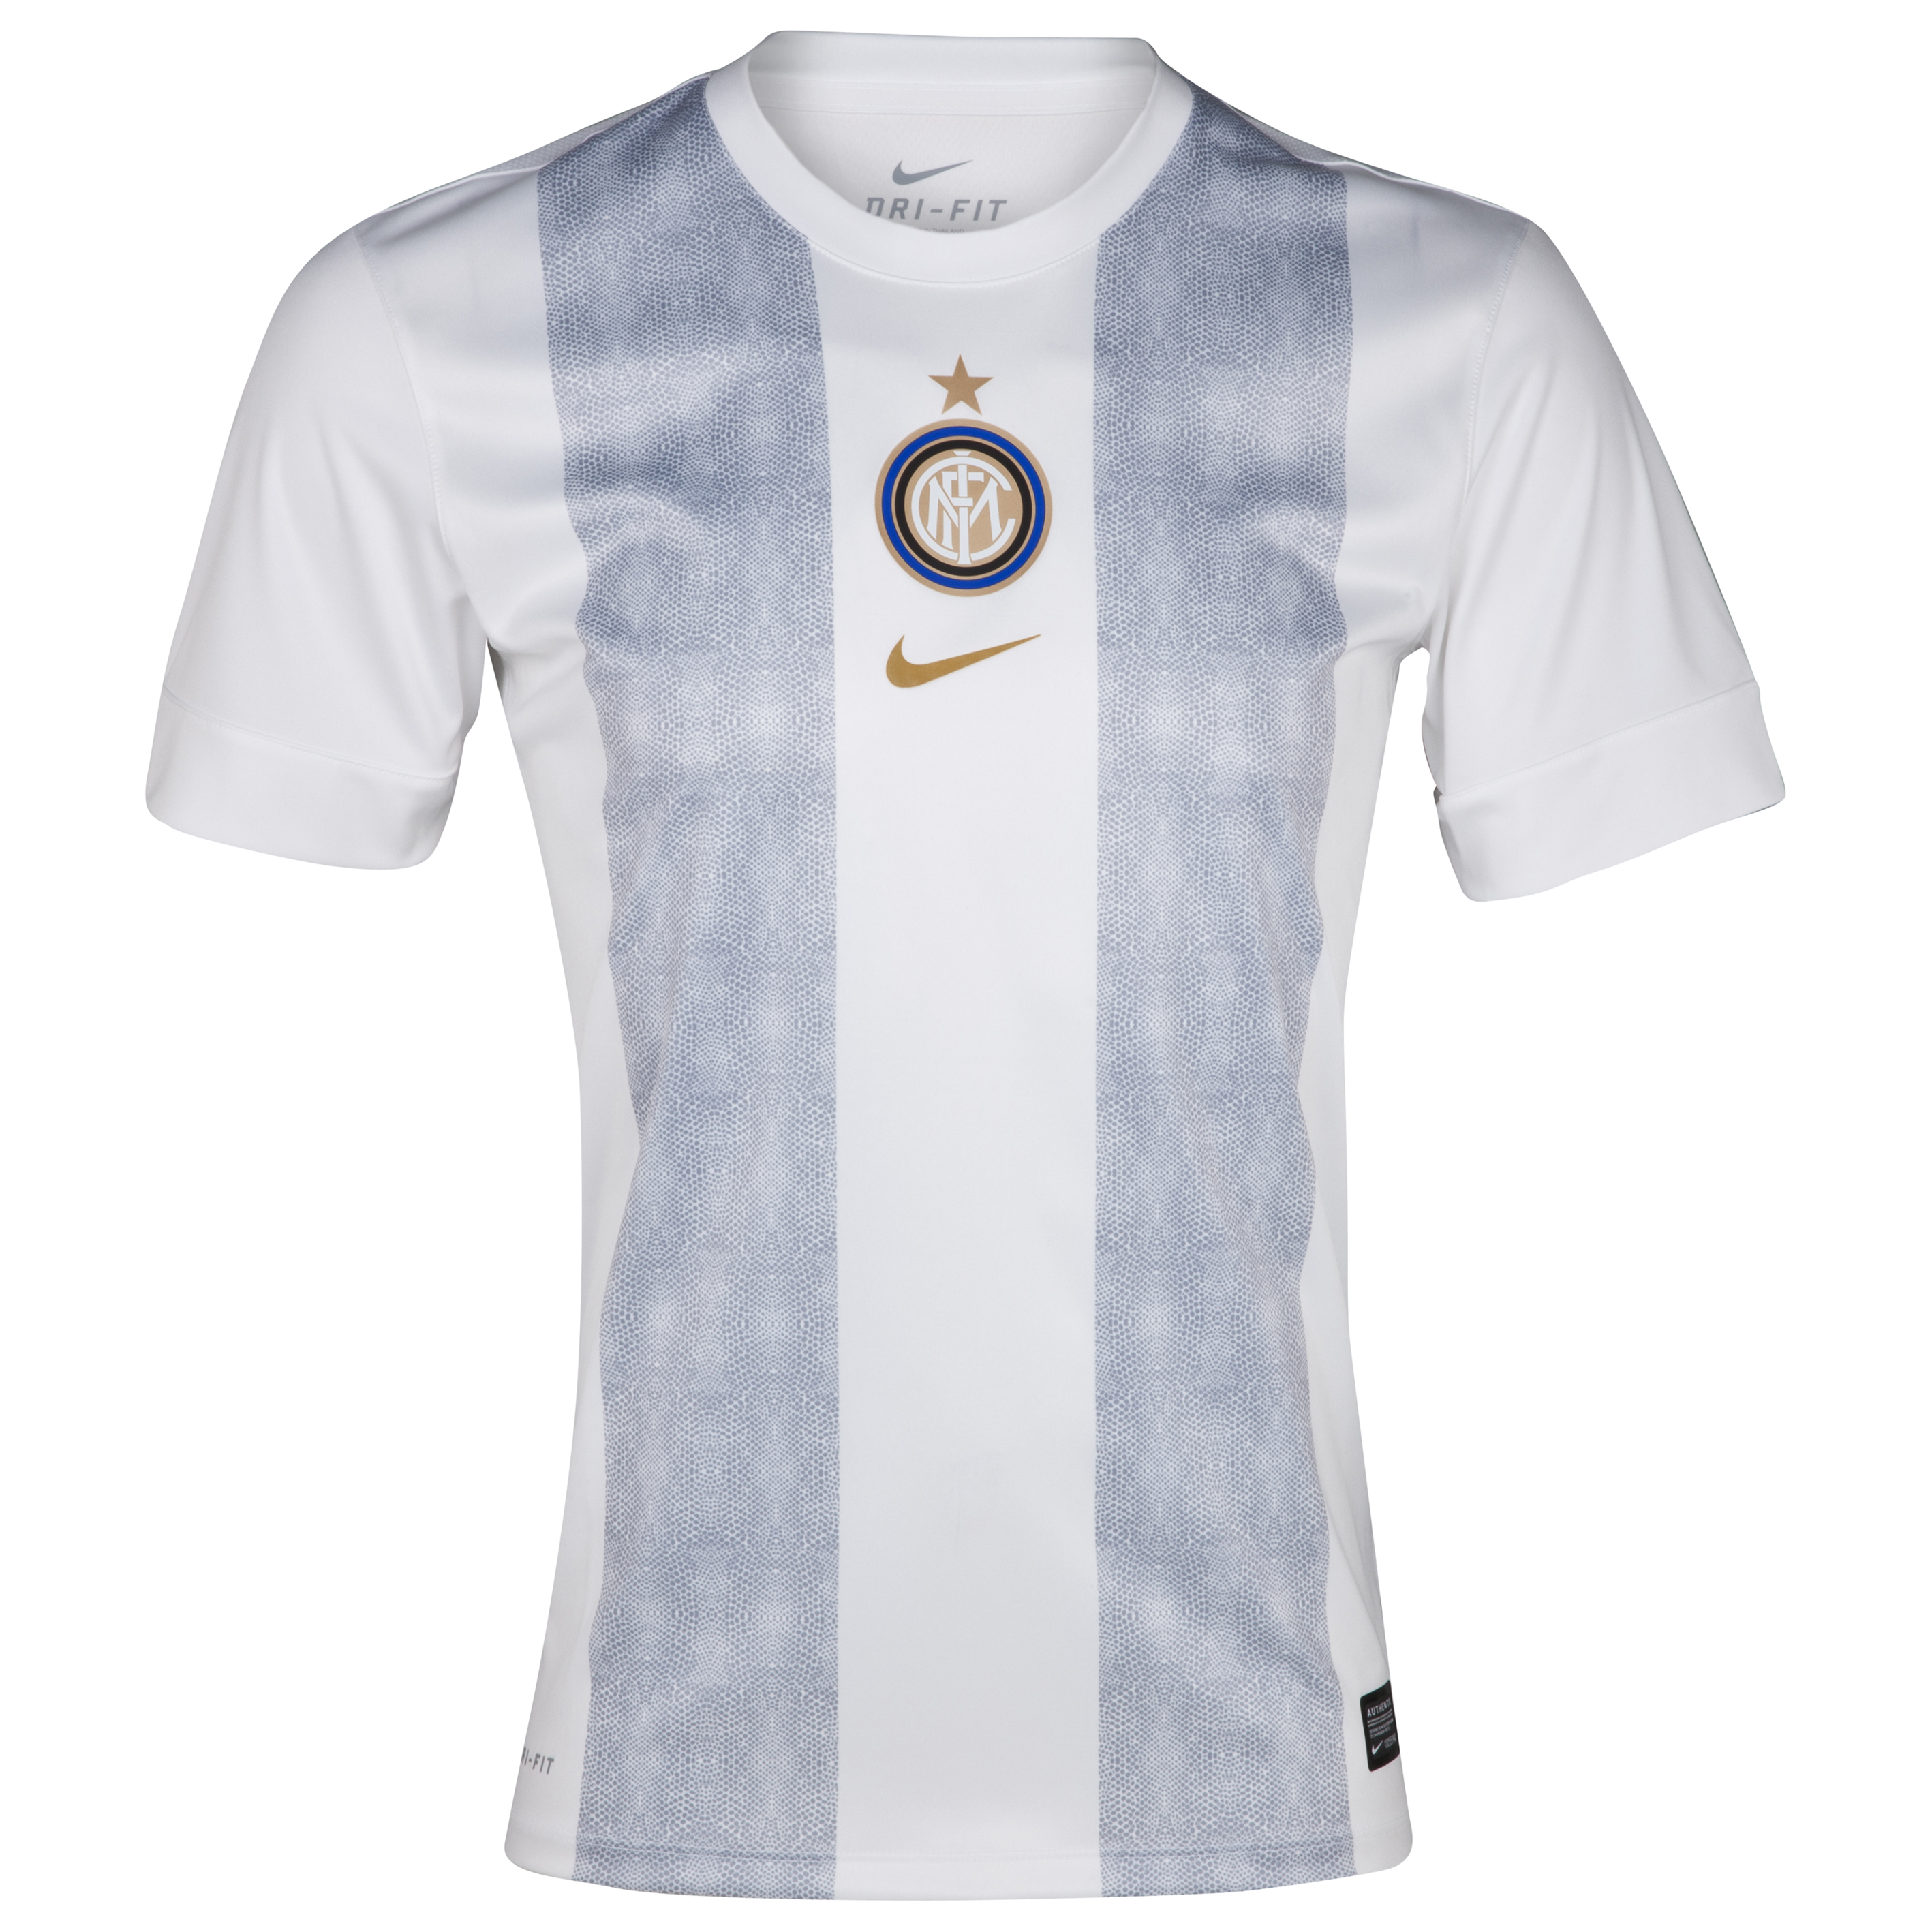 Inter Milan Pre MatchTop II - White/Metallic Gold